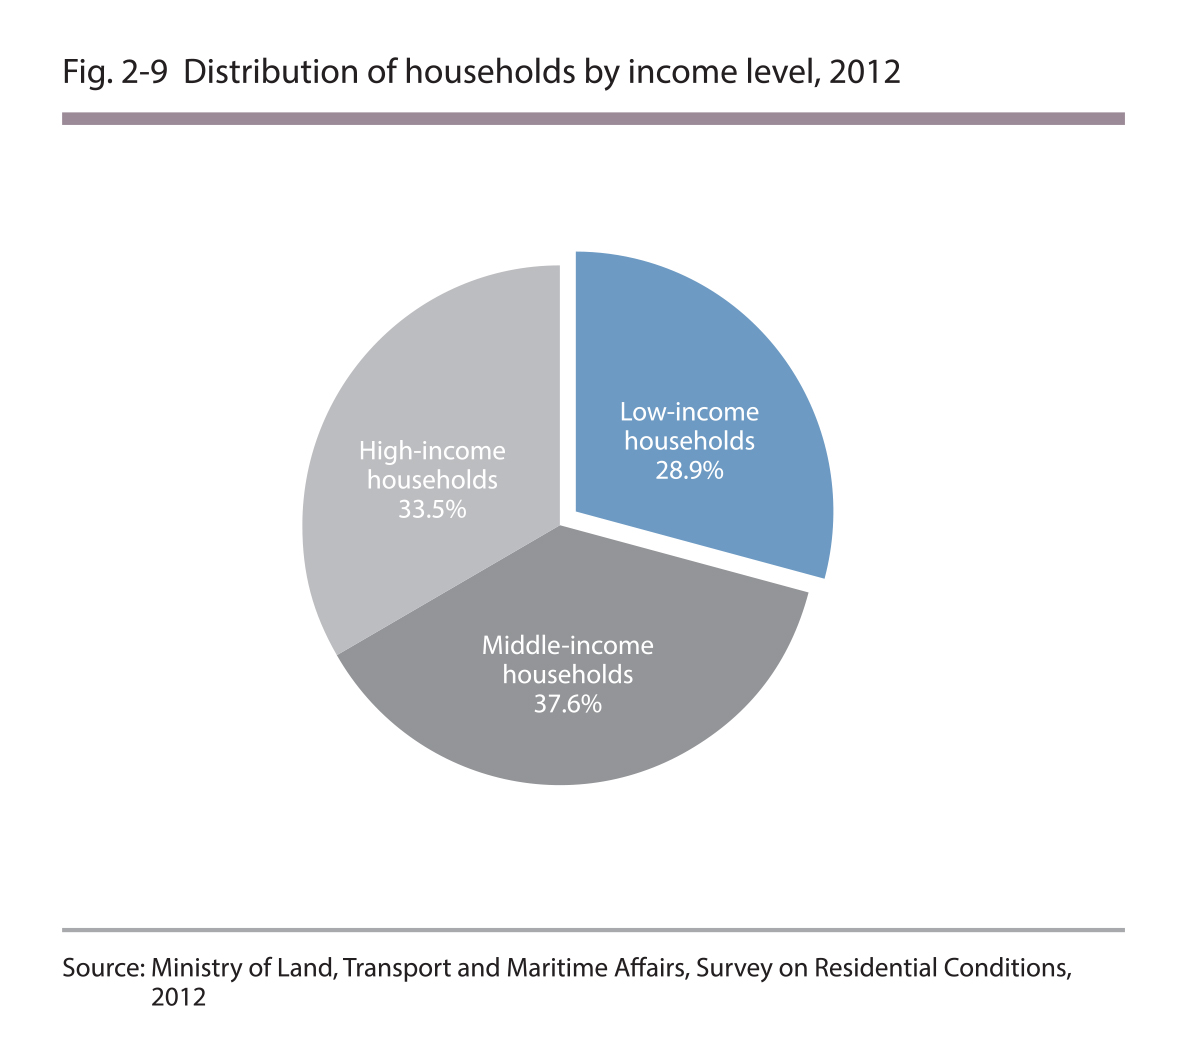 Distribution of households by income level, 2012